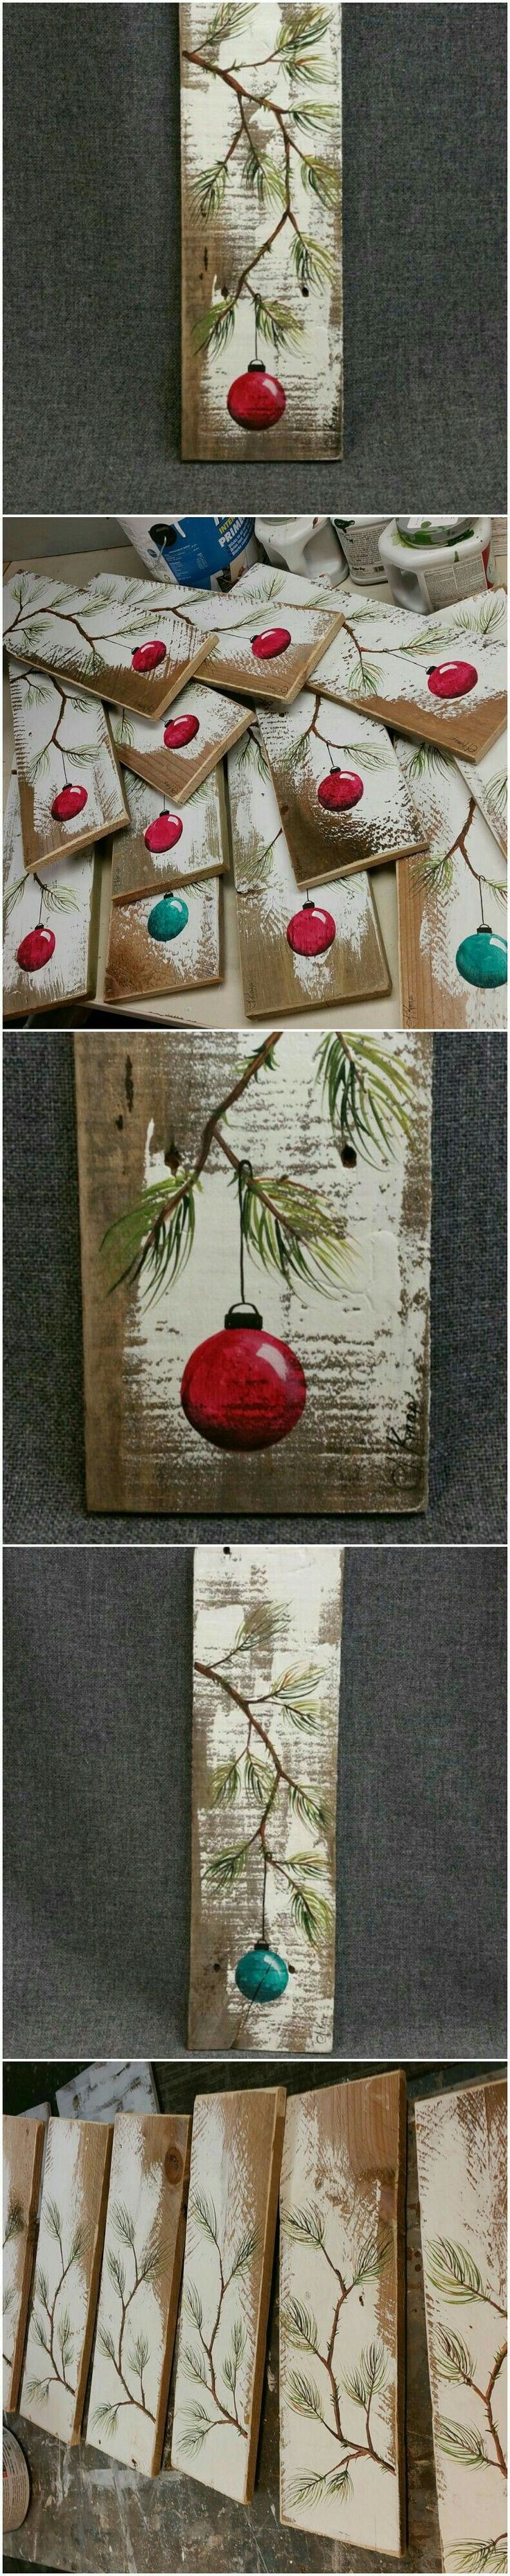 Reclaimed wood Christmas balls paintings, Christmas gift idea.